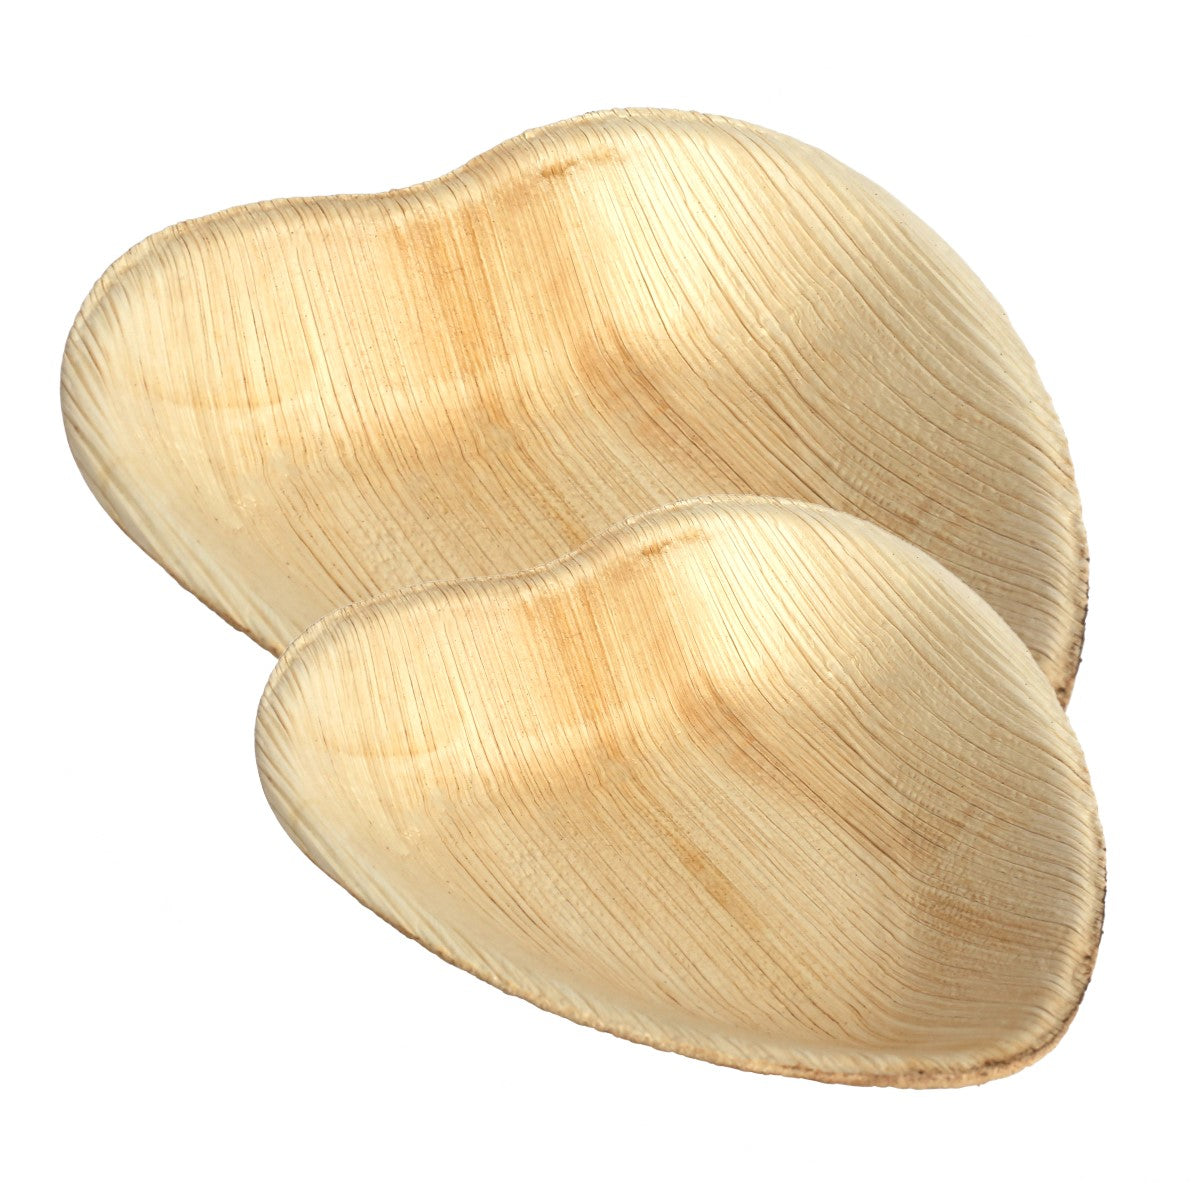 Palm Leaf Heart Shaped Plates - 25 Pack